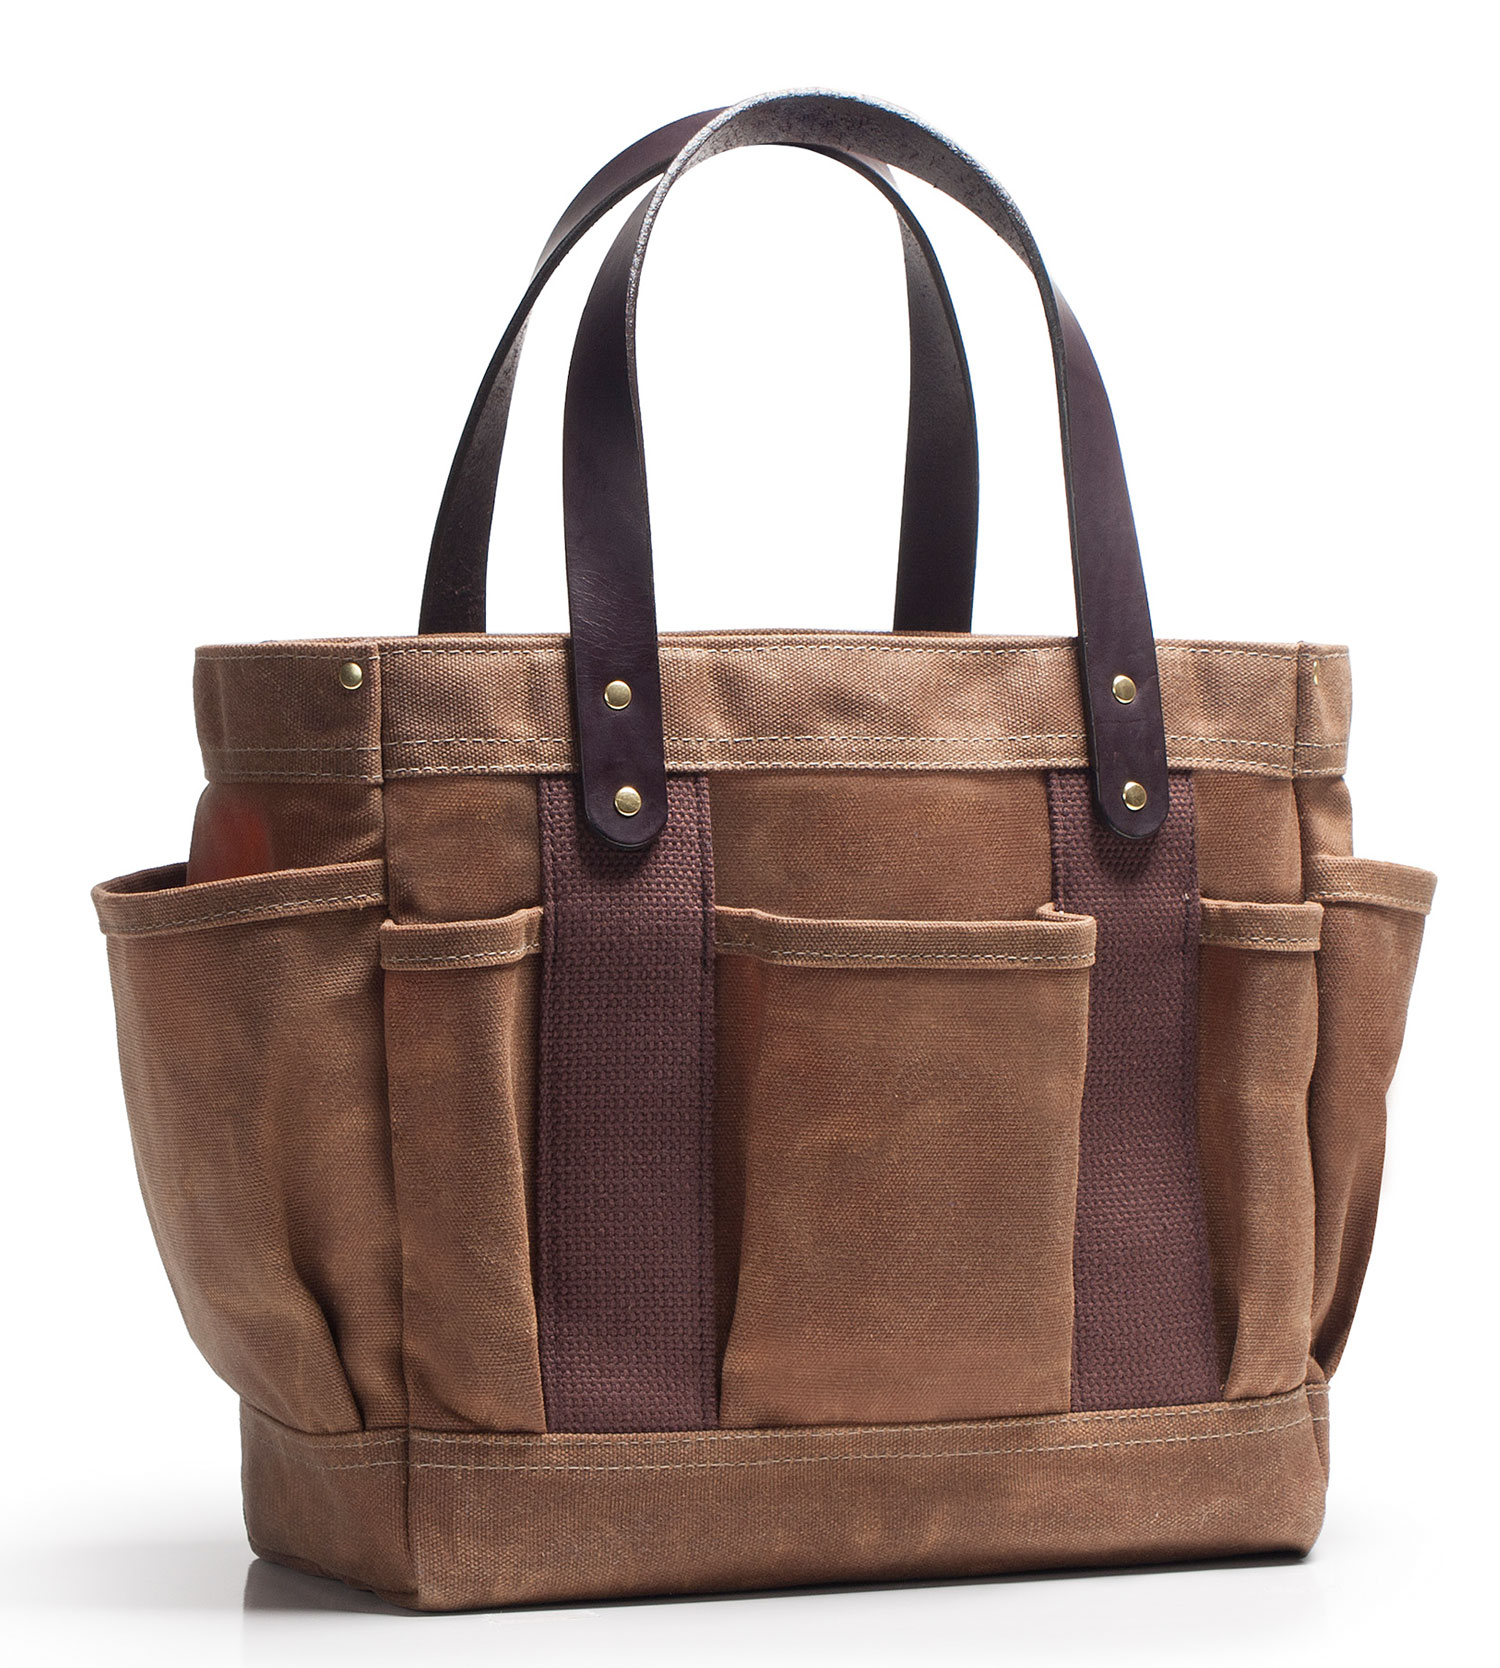 a7bf0df33718 Rigger s Tote - Waxed Canvas